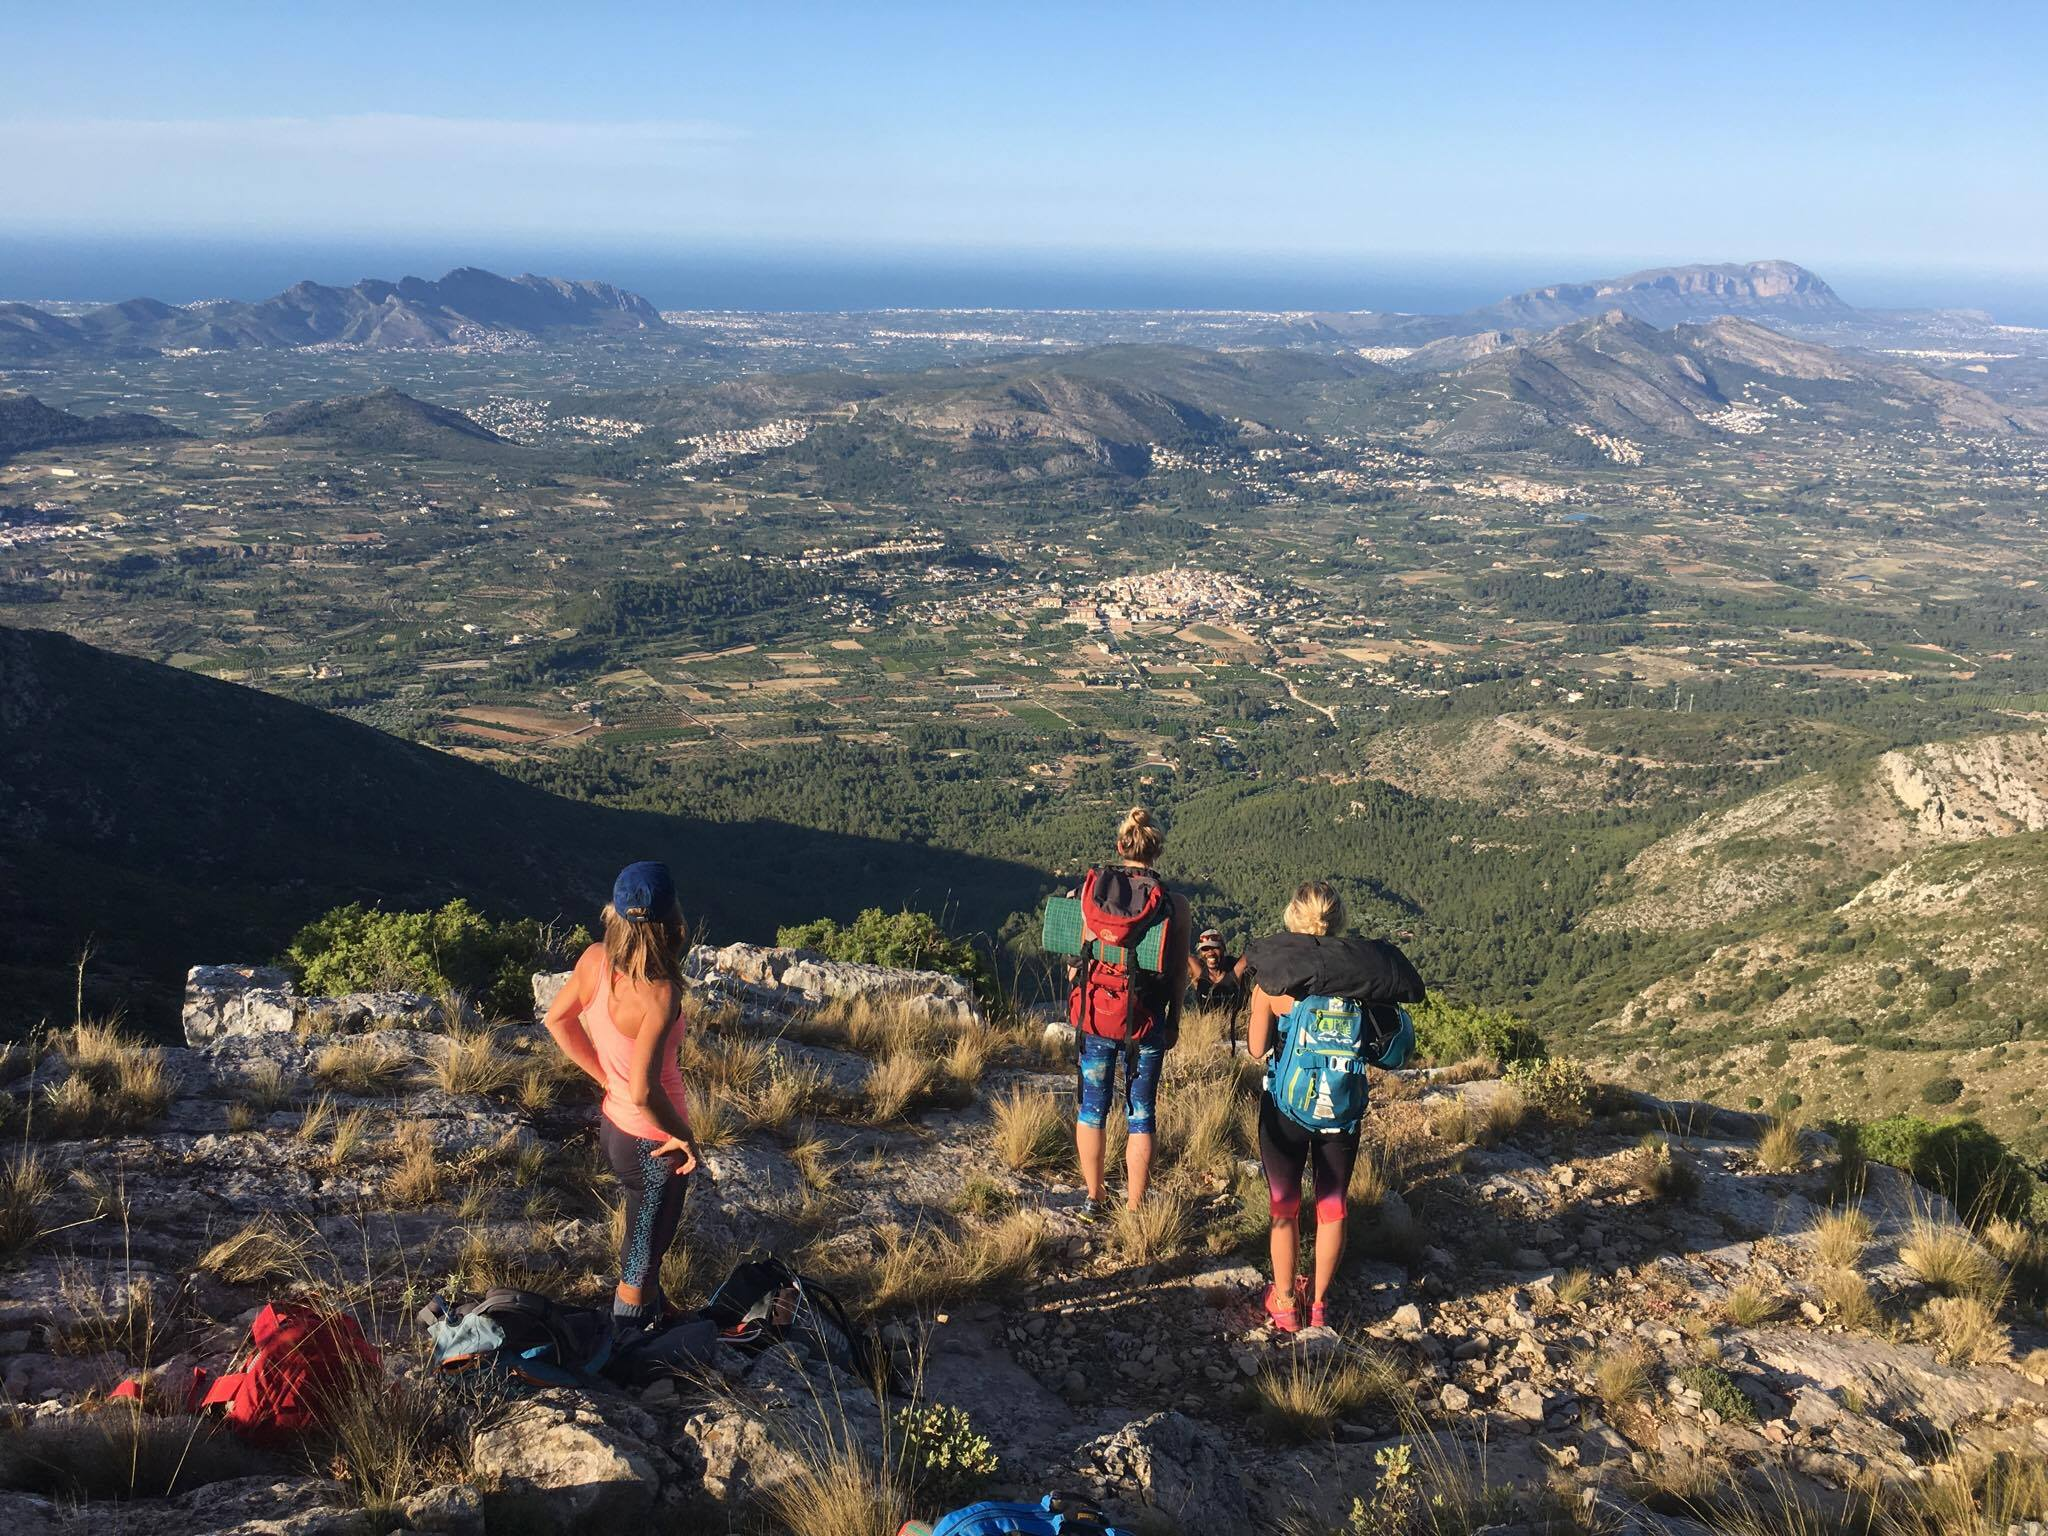 Fancy the best Spanish rock climbing holiday in Costa Blanca? View from Polupi crag image by Rock and Sun photo by Nick Riley